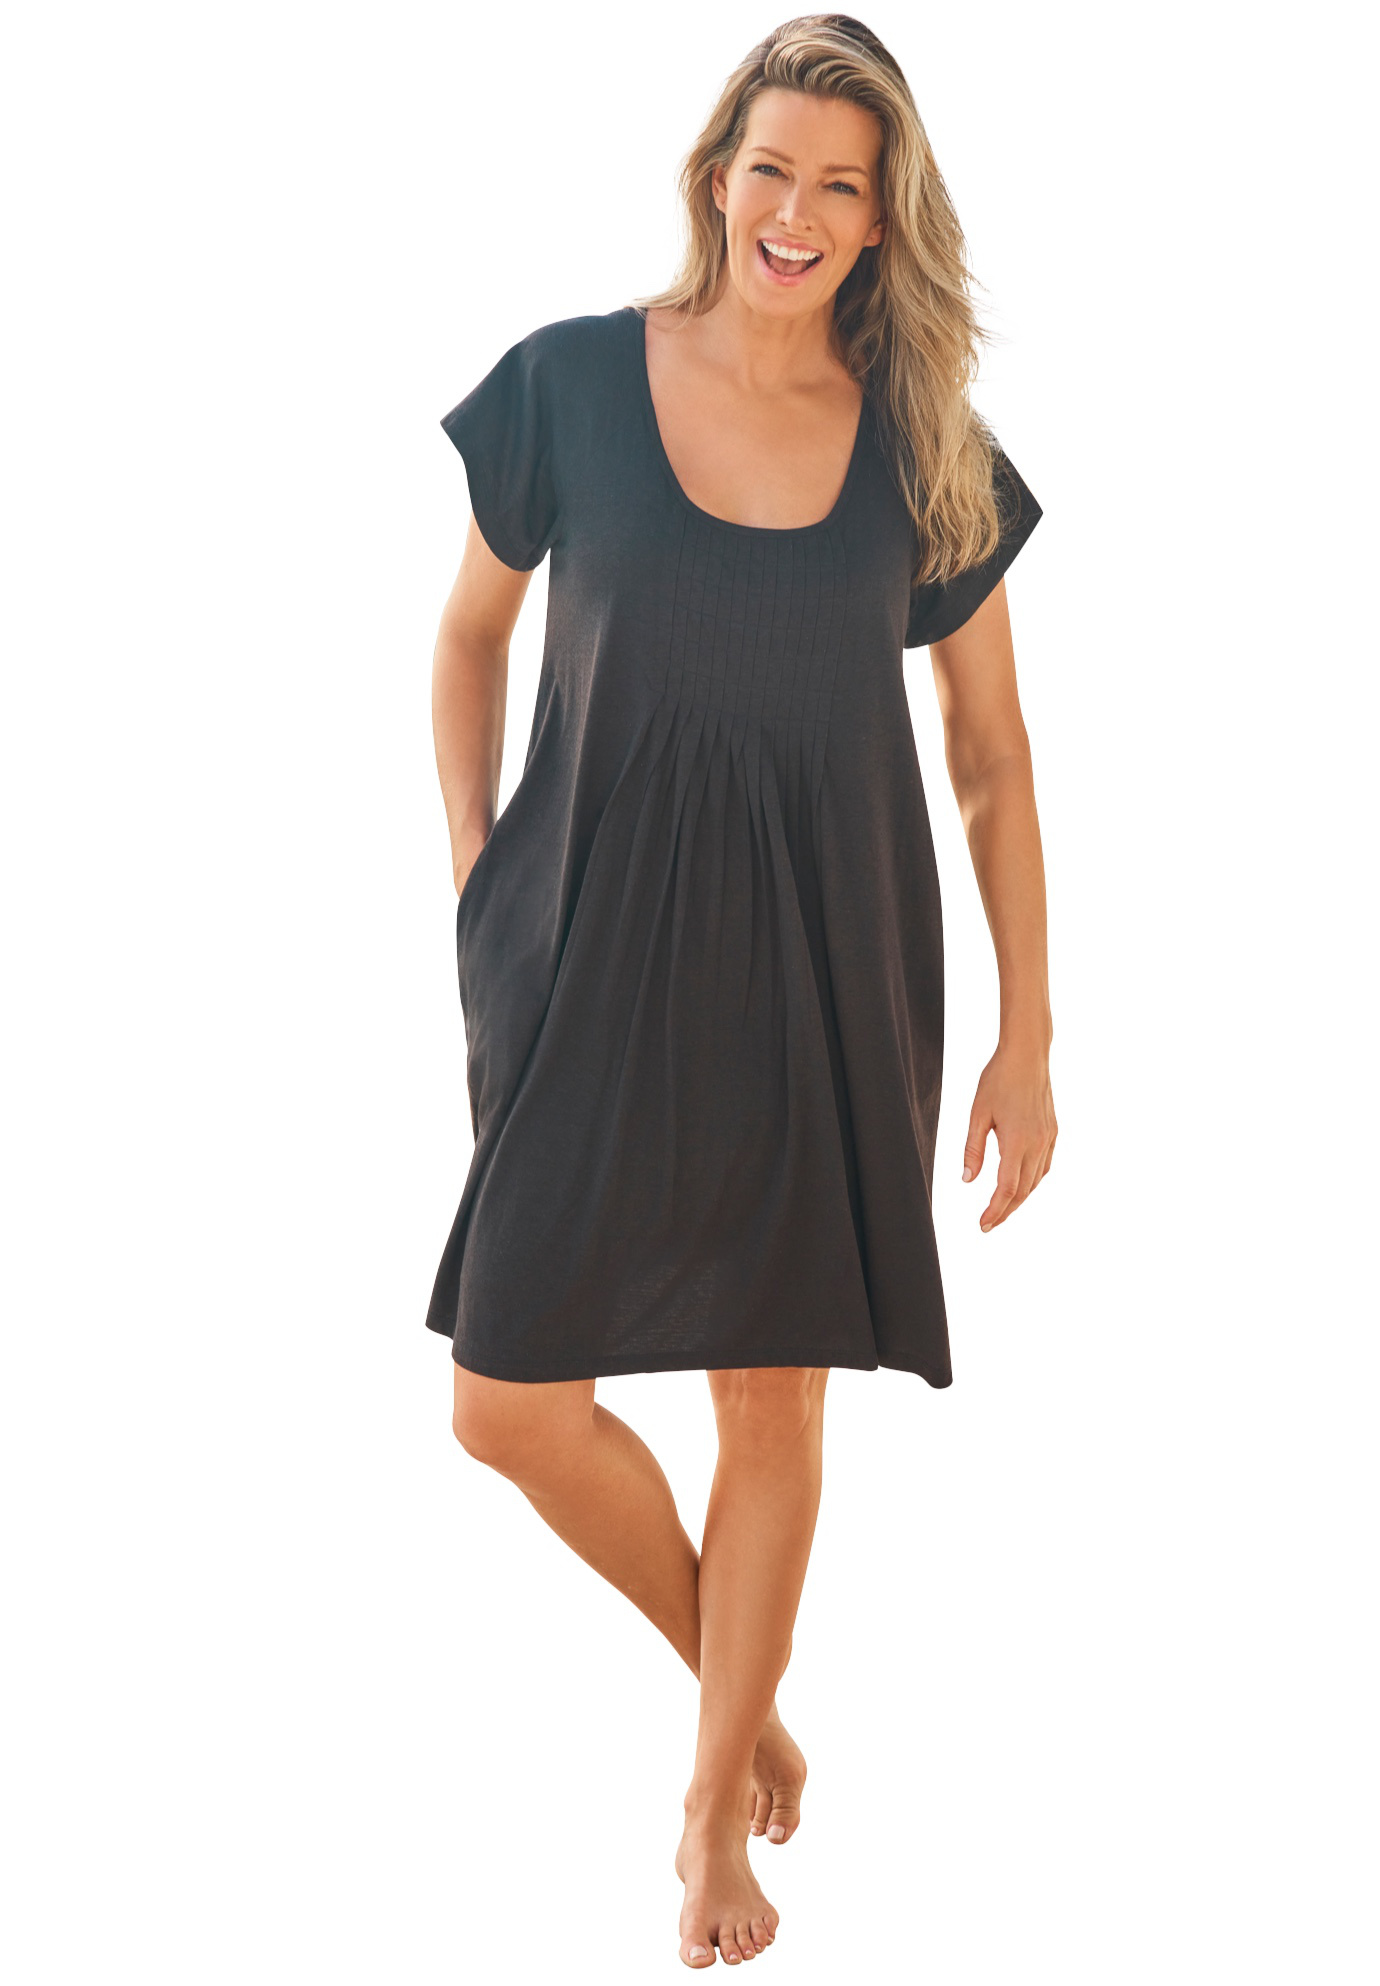 Plus Size Women's Box-Pleat Cover Up by Swim 365 in Black